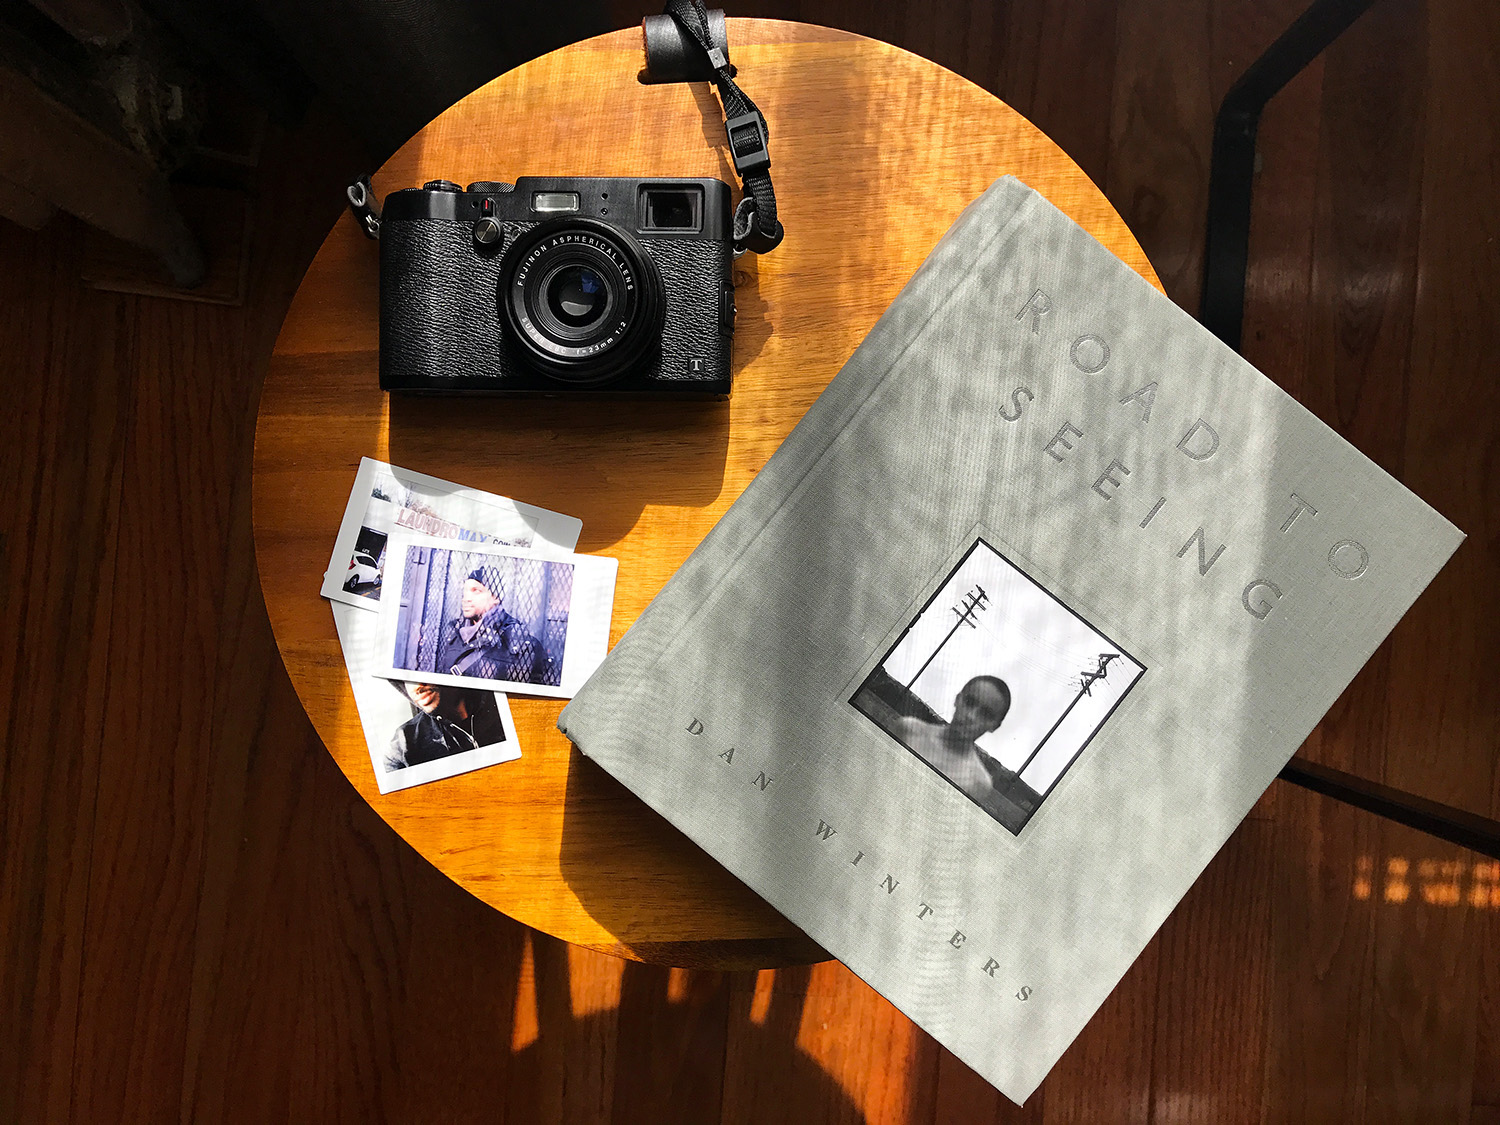 Coffee & A Photo Book: - Dan Winters' Road to Seeing